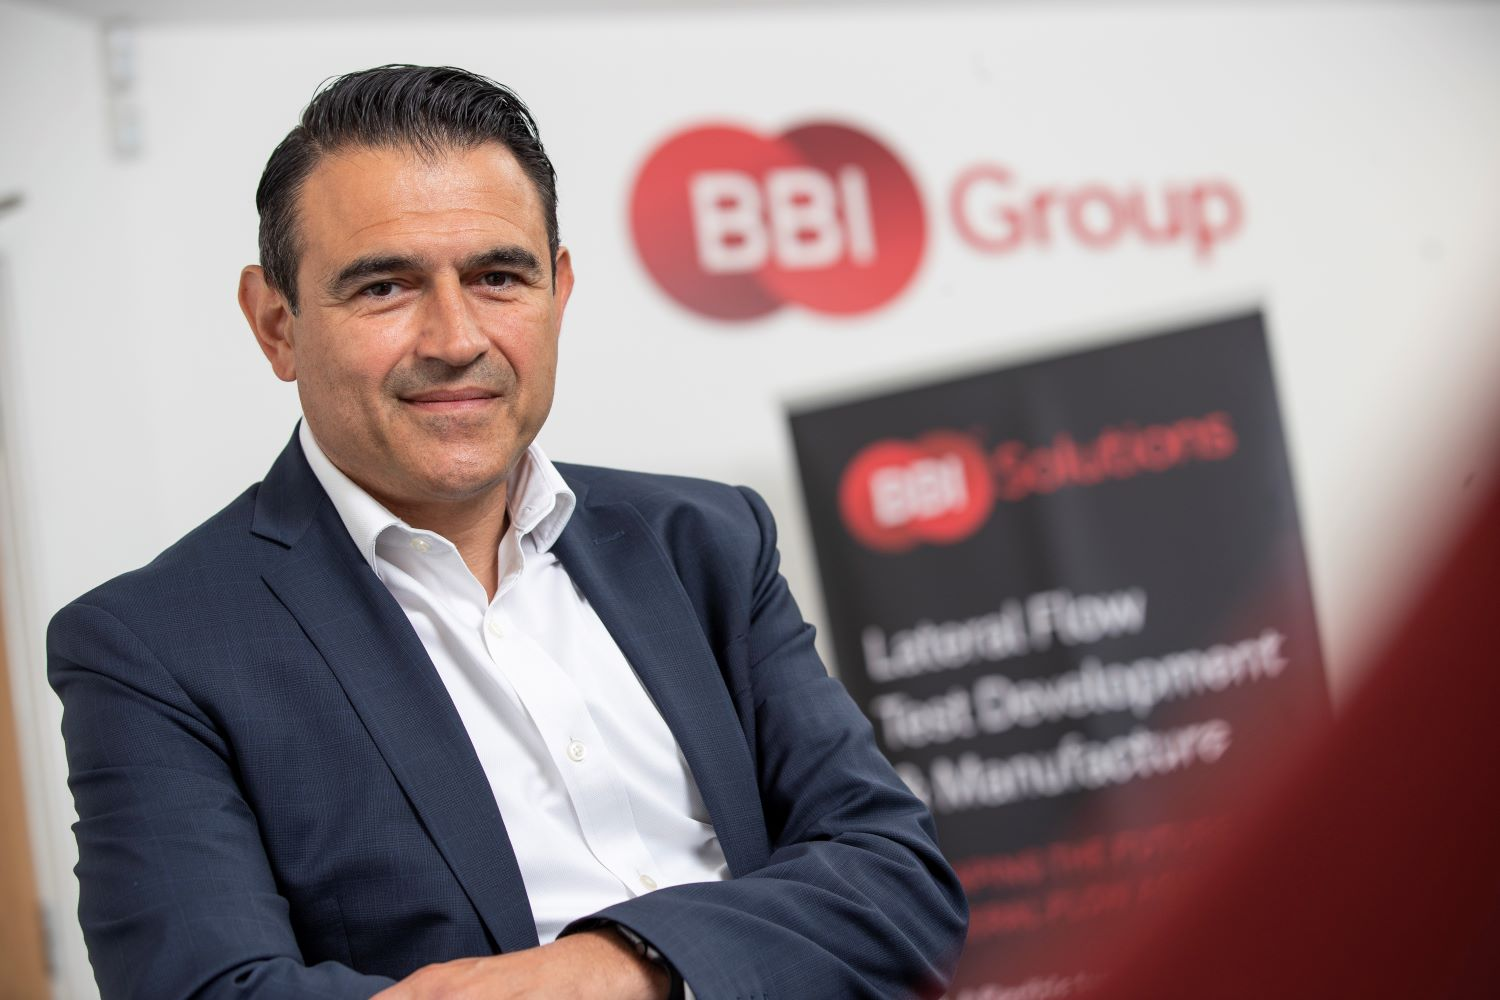 BBI Solutions Confirms UK Government contract for UK-Rapid Test Consortium